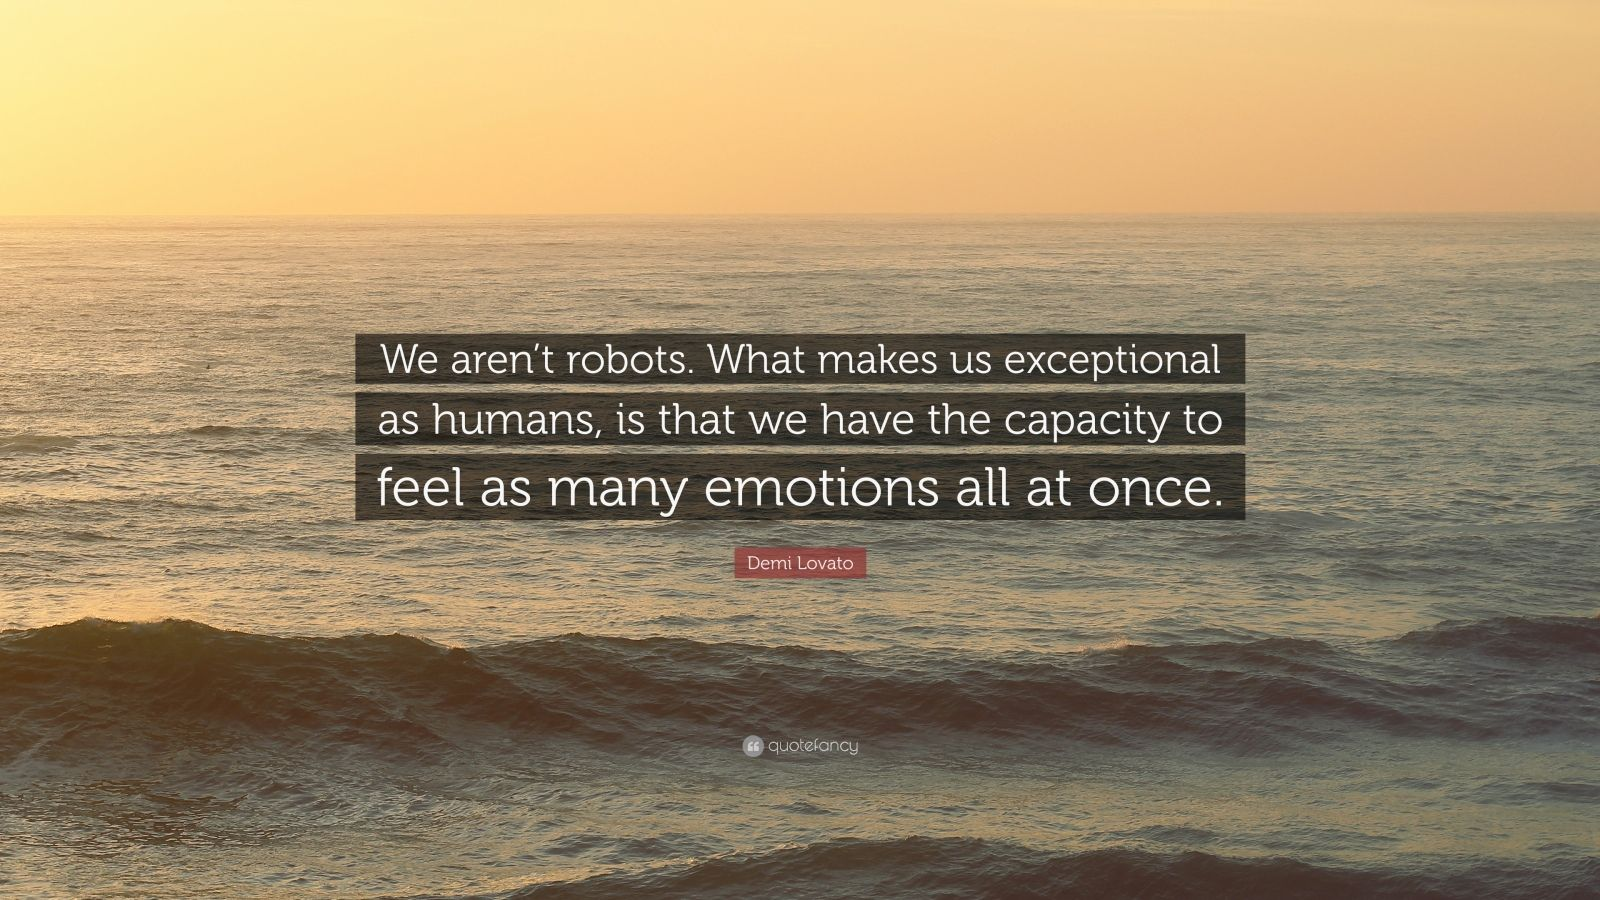 """Demi Lovato Quote: """"We aren't robots. What makes us exceptional as humans, is that we have the capacity to feel as many emotions all at once."""""""